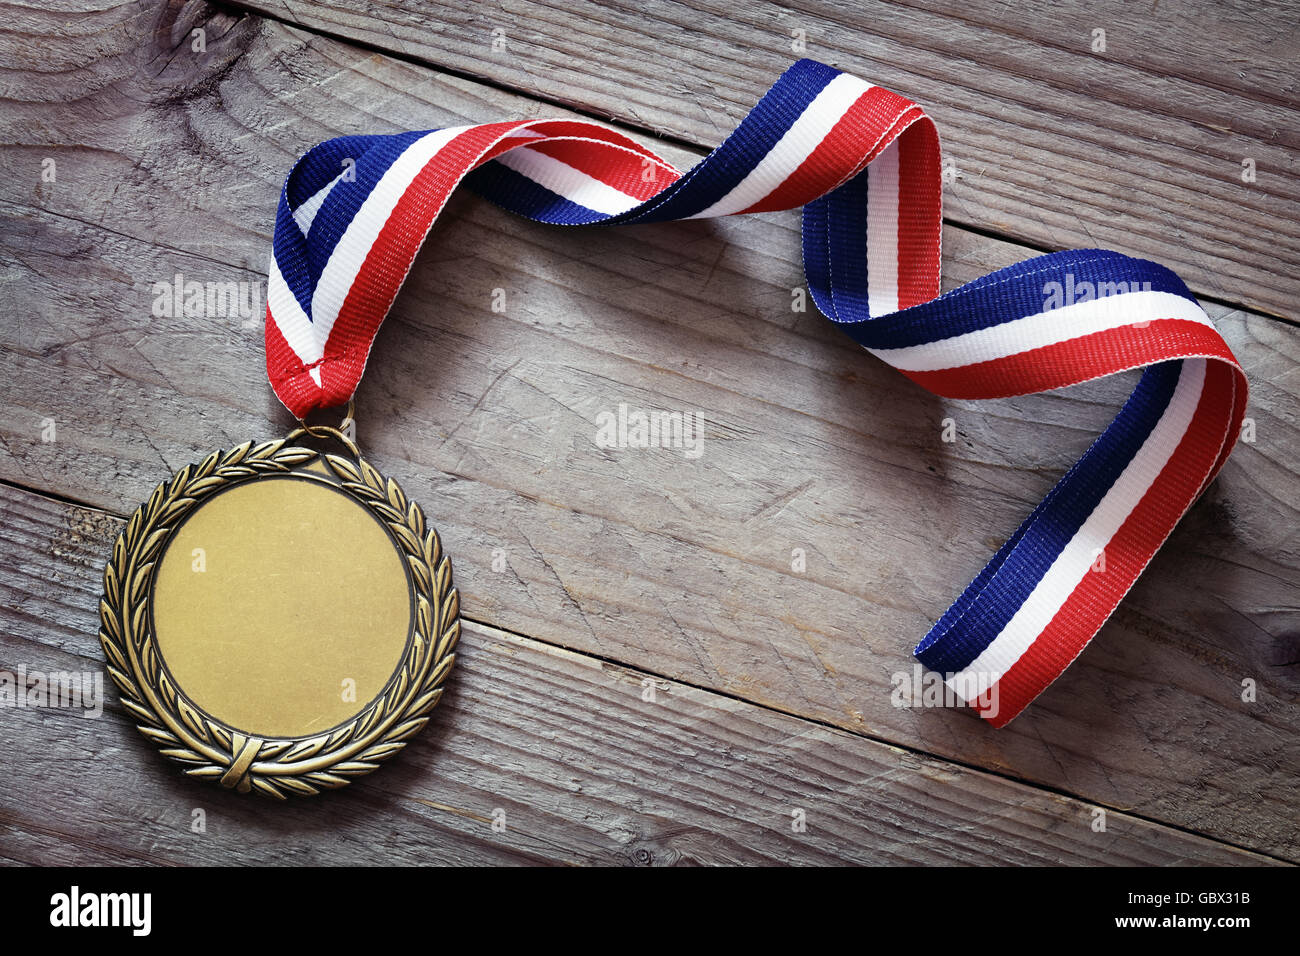 Gold medal on wood background with blank face for text, concept for winning or success - Stock Image